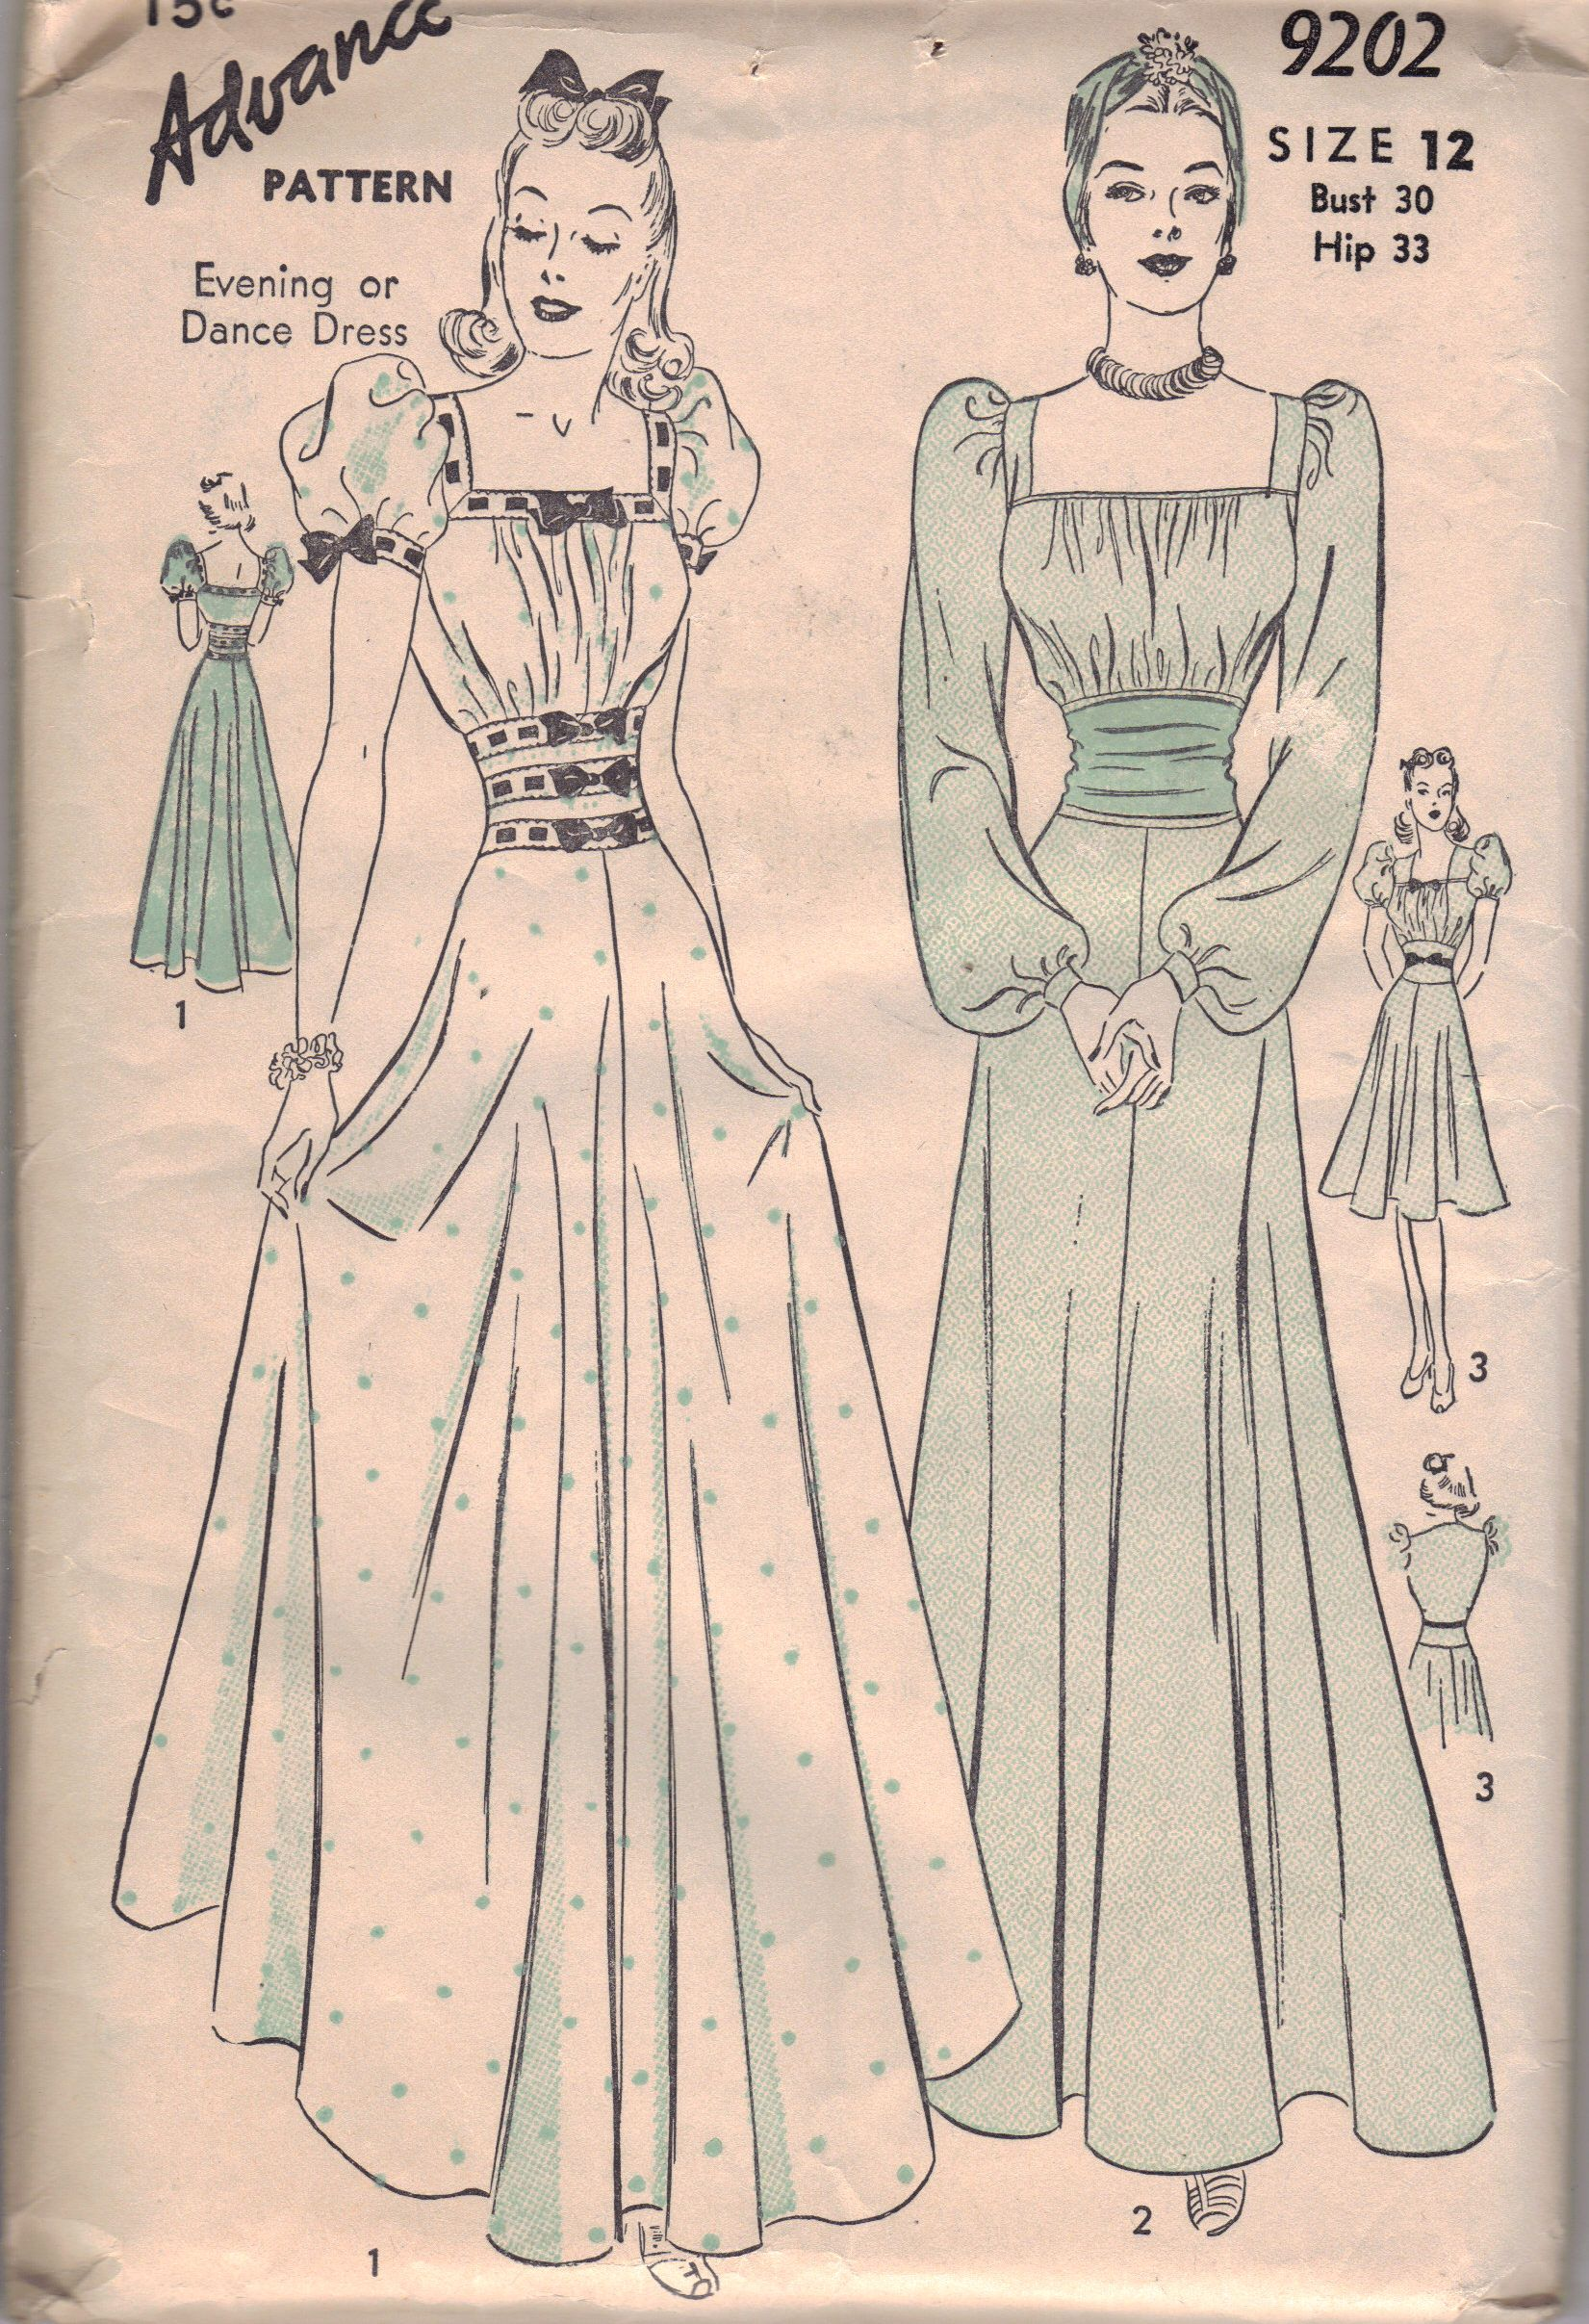 1940 S Formal Dress Pattern From The Collection Of Stephanie Pitchers Sewing Pattern Book Wwii Fashion Vintage Sewing Patterns [ 2414 x 1651 Pixel ]